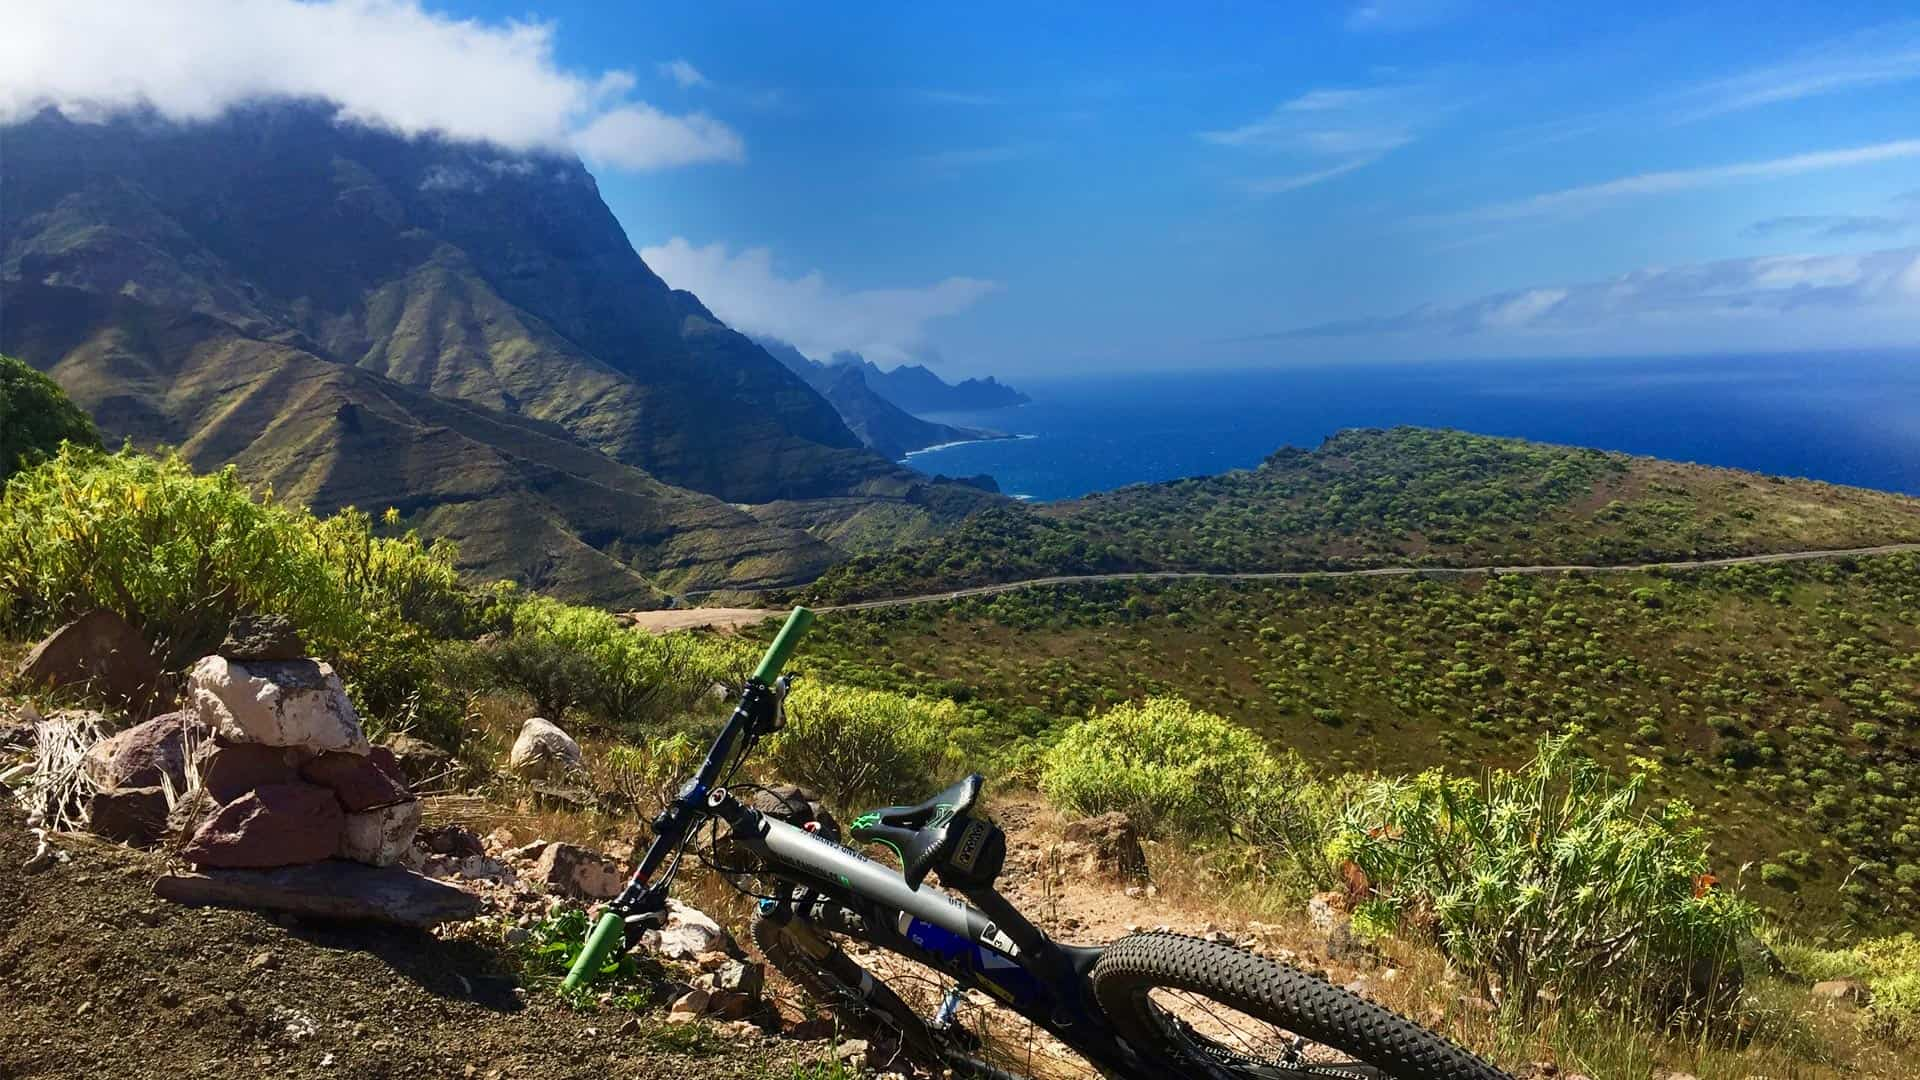 Gran Canaria Mountain Bike - come and ride with us